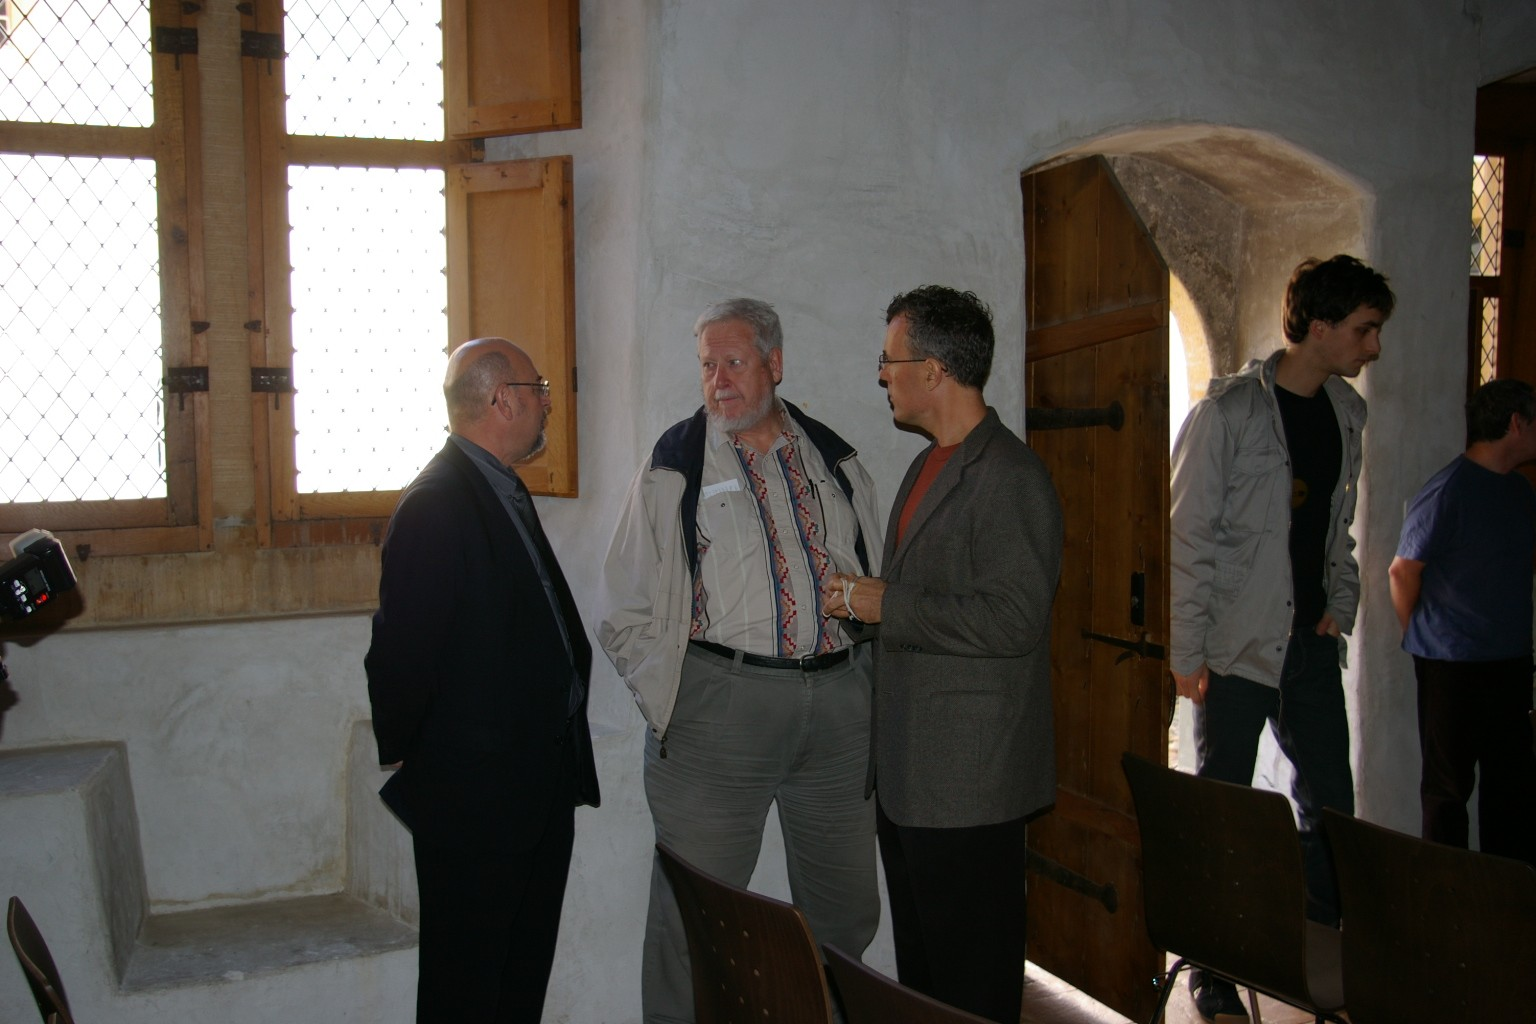 jmm0650.jpg - October 5: gathering in the Castle for the JV Symposium.